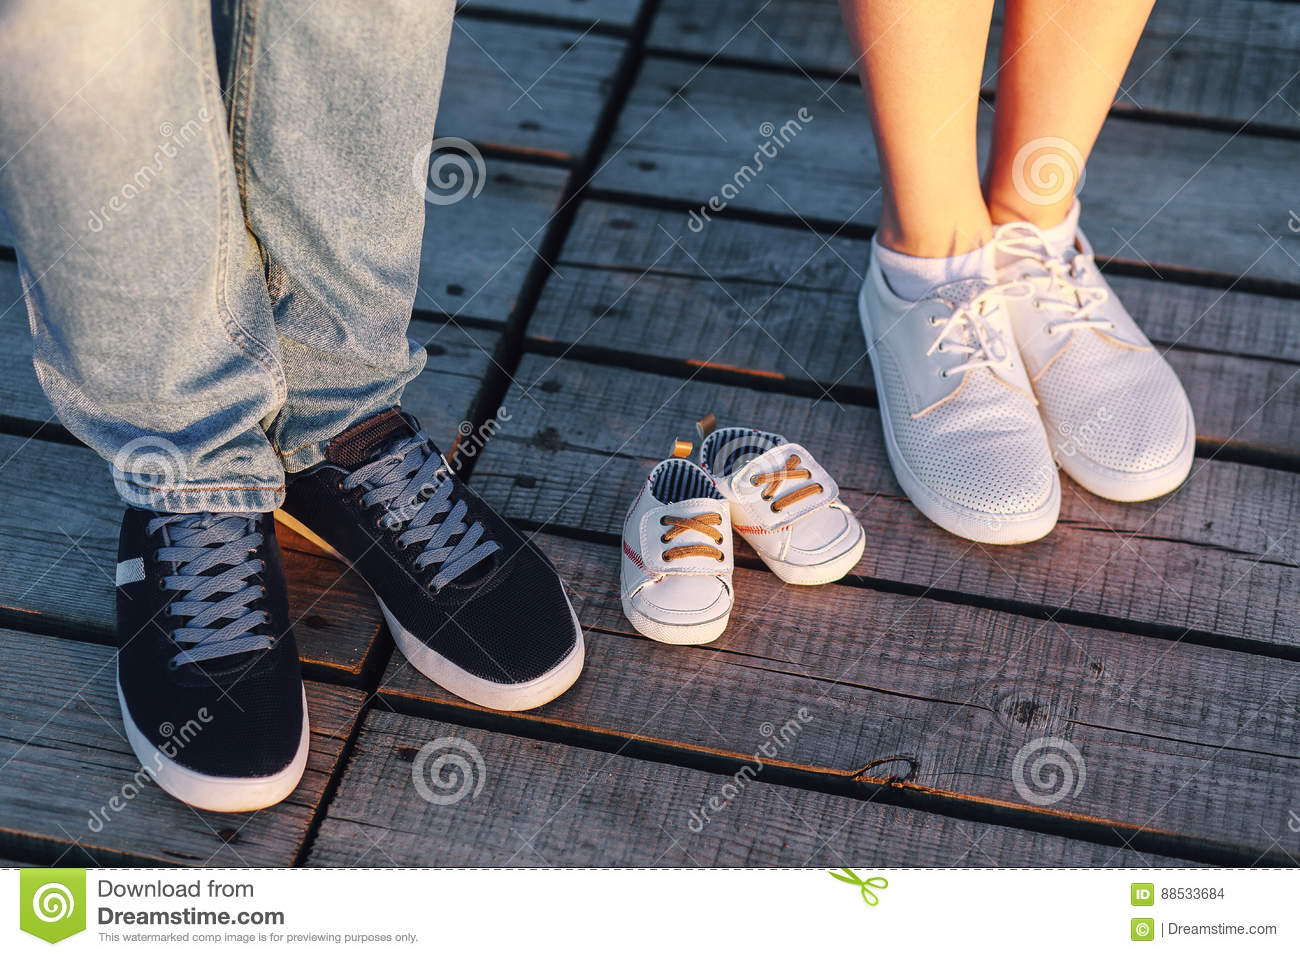 866f65426a2ee Mom, Dad And The Future Baby Shoes Stock Photo - Image of maternity ...